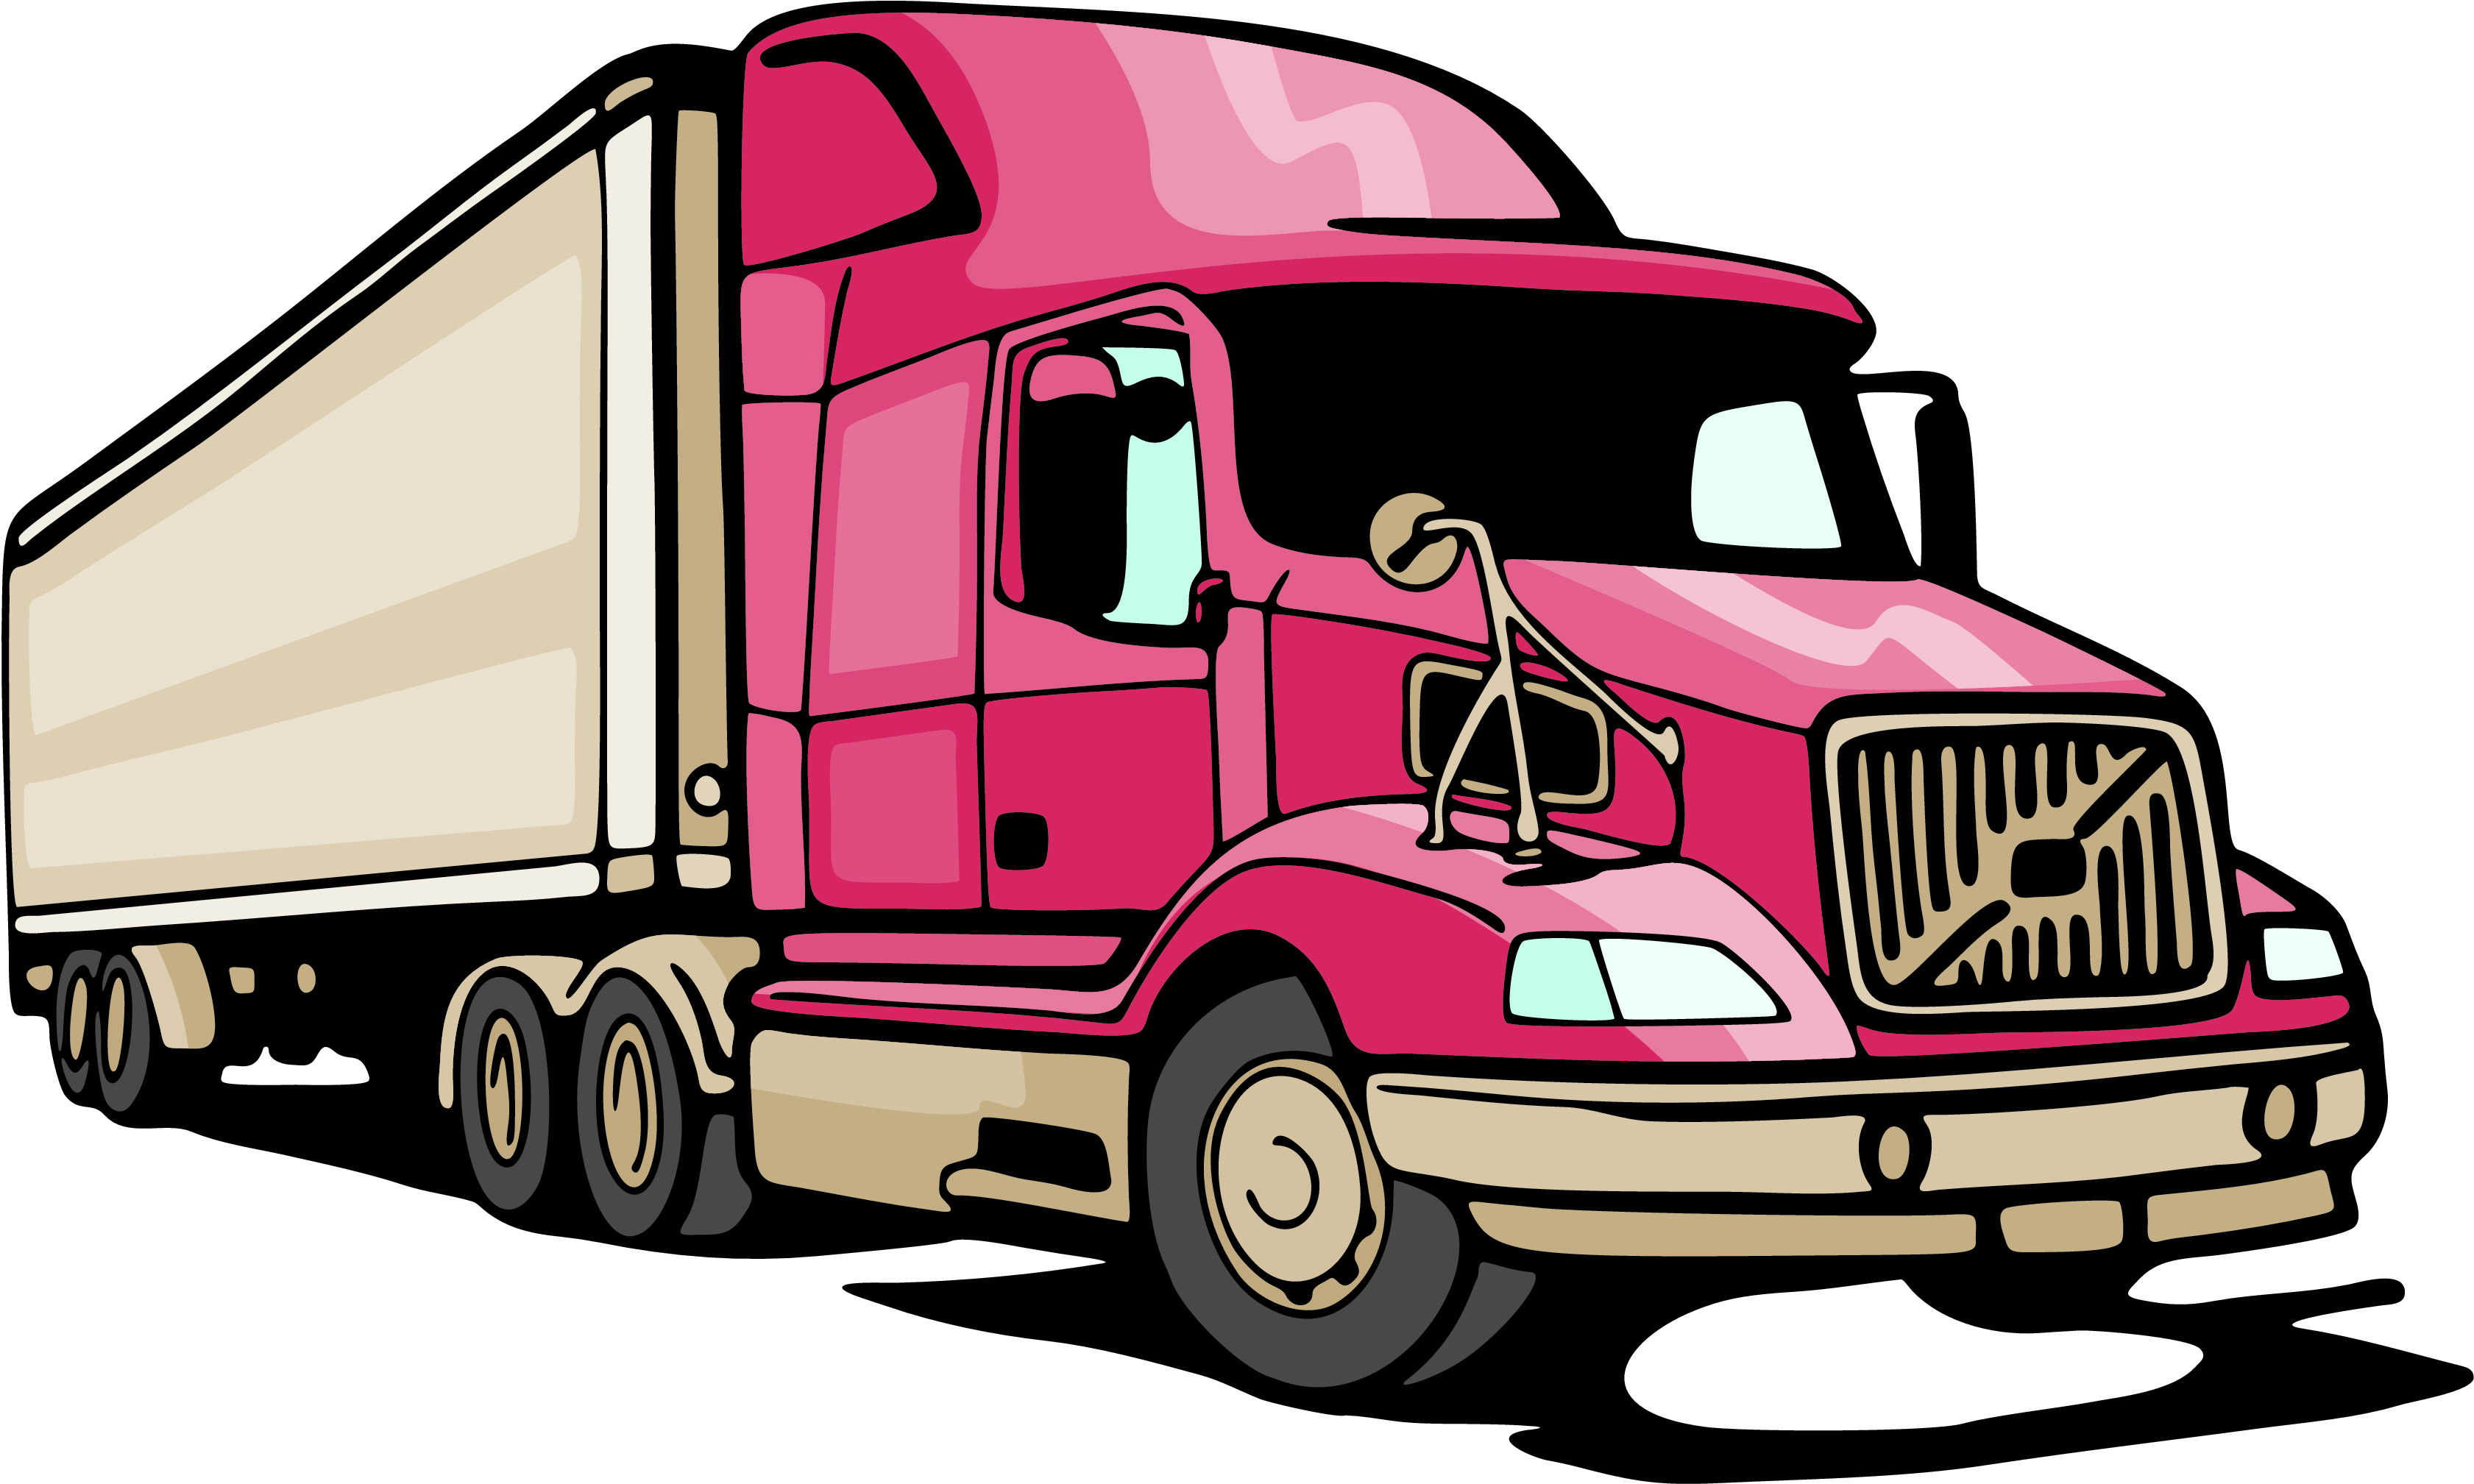 Wrightway Freight Systems Llc